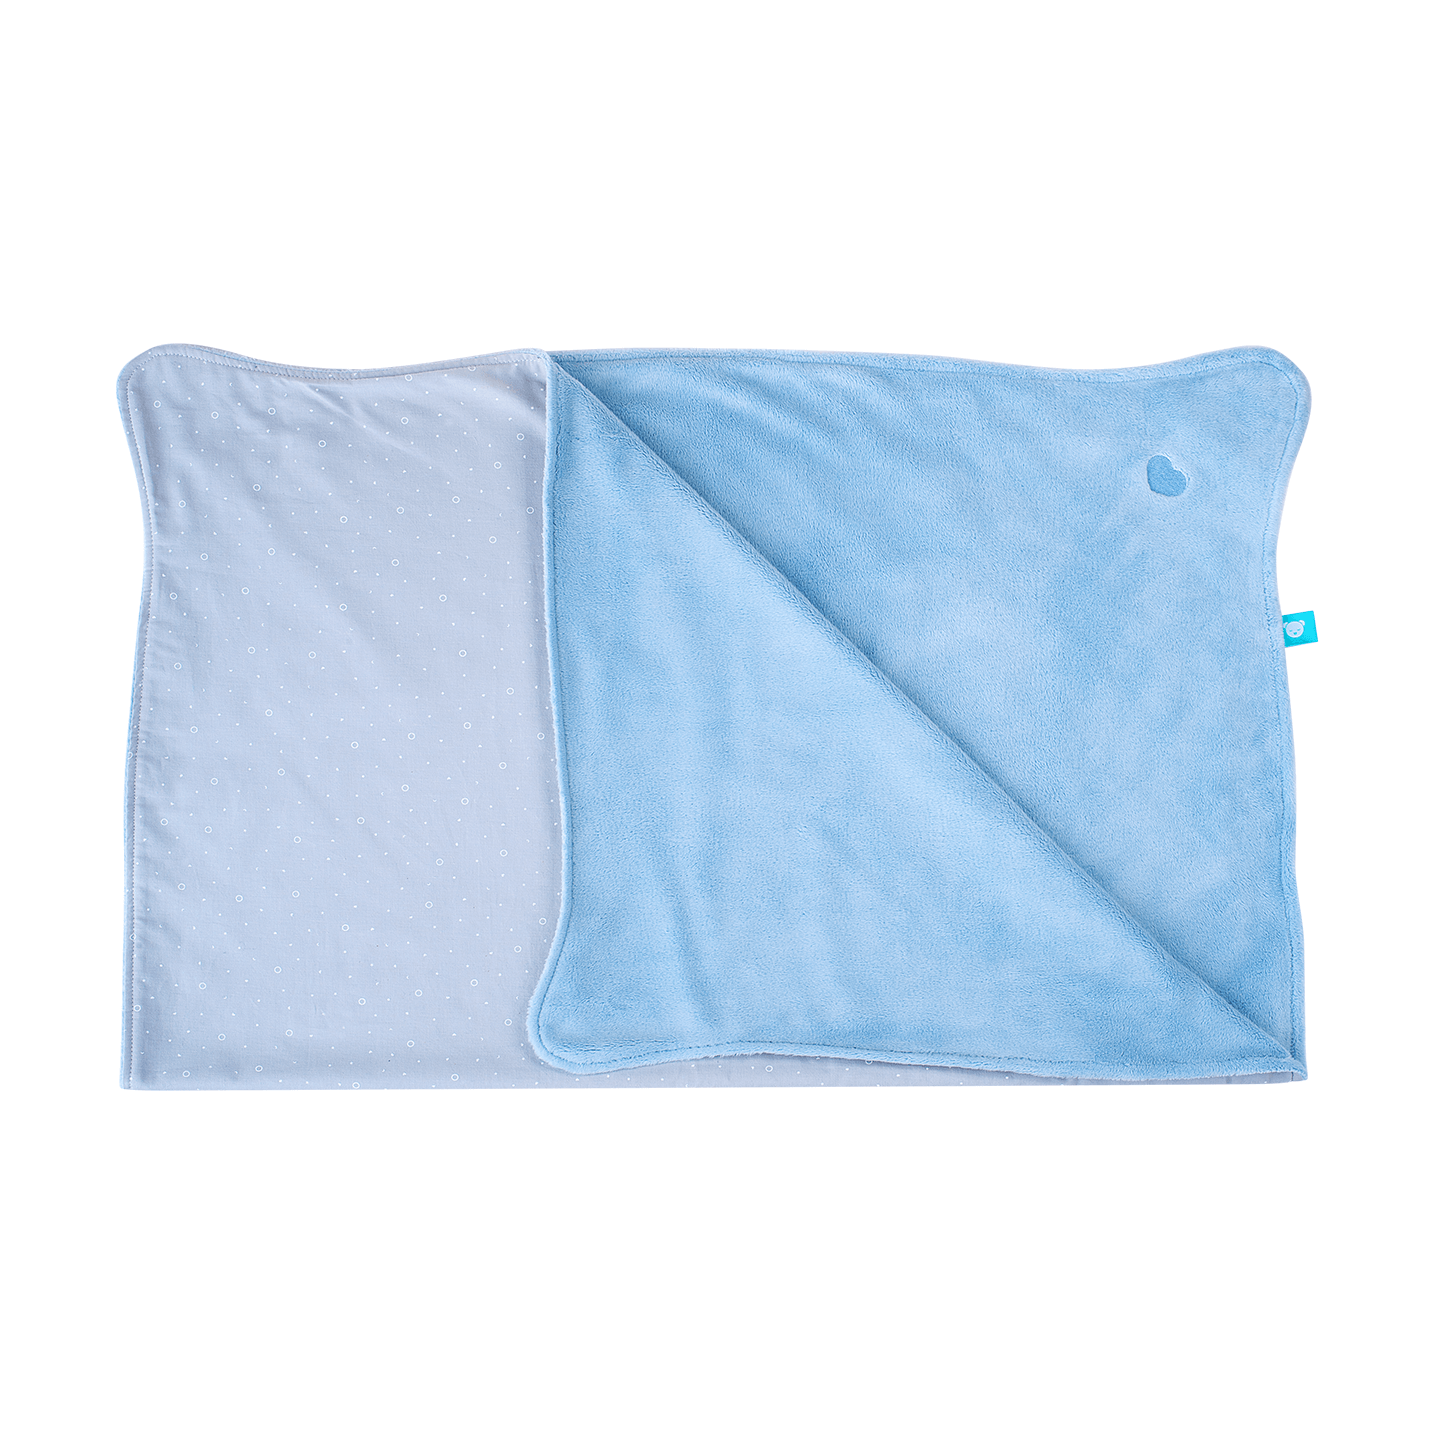 myHummy The Sleepthearts' Favorite Blanket - blue/grey